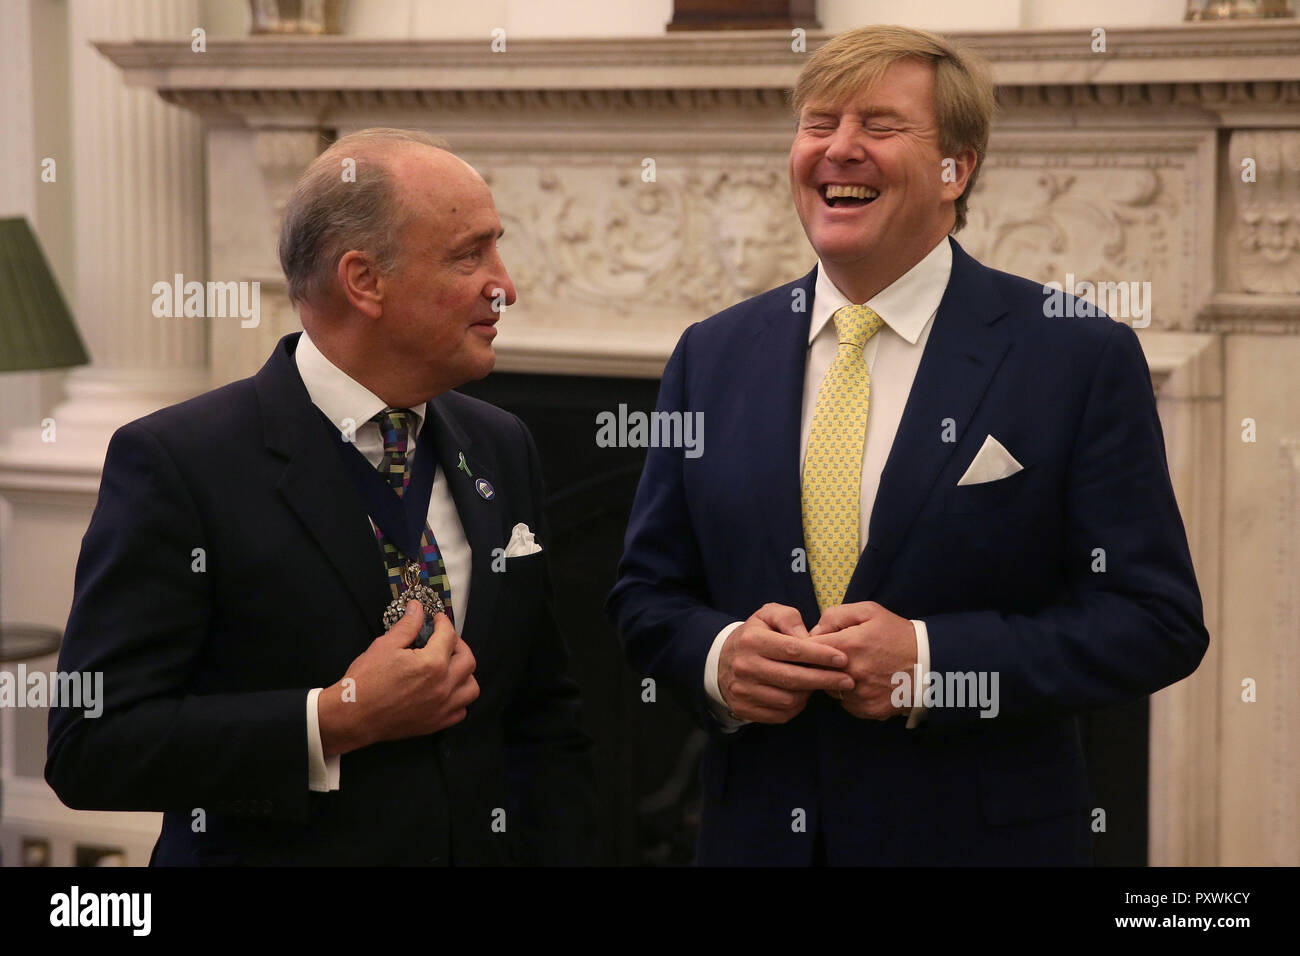 King Willem-Alexander of the Netherlands talks with the Lord Mayor of London Charles Bowman during the UK-Netherlands Innovation Showcase at Mansion House in London on the second day of his State Visit to the UK. - Stock Image